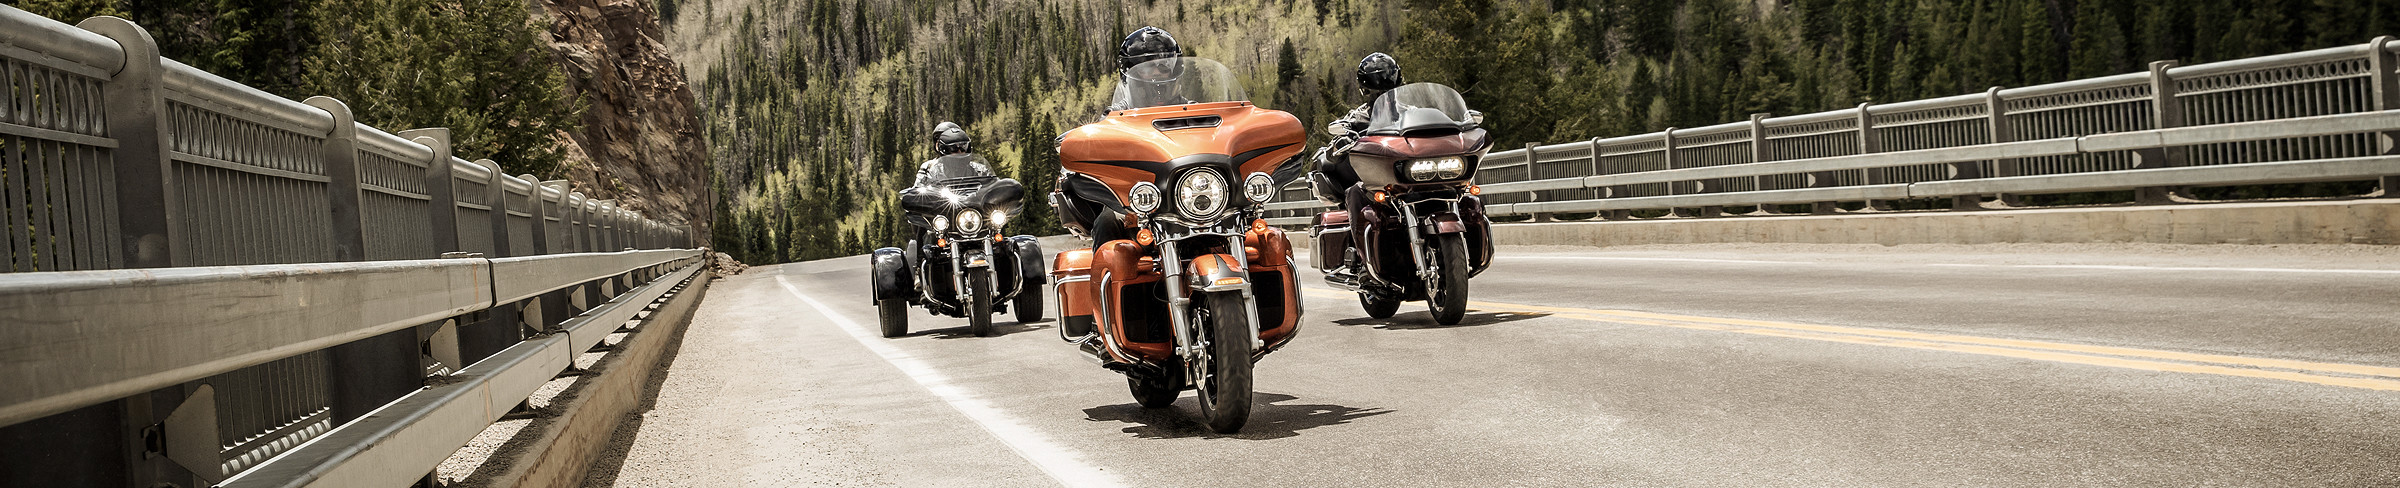 Used Harley Davidson Street Glide for sale near Mankato, MN